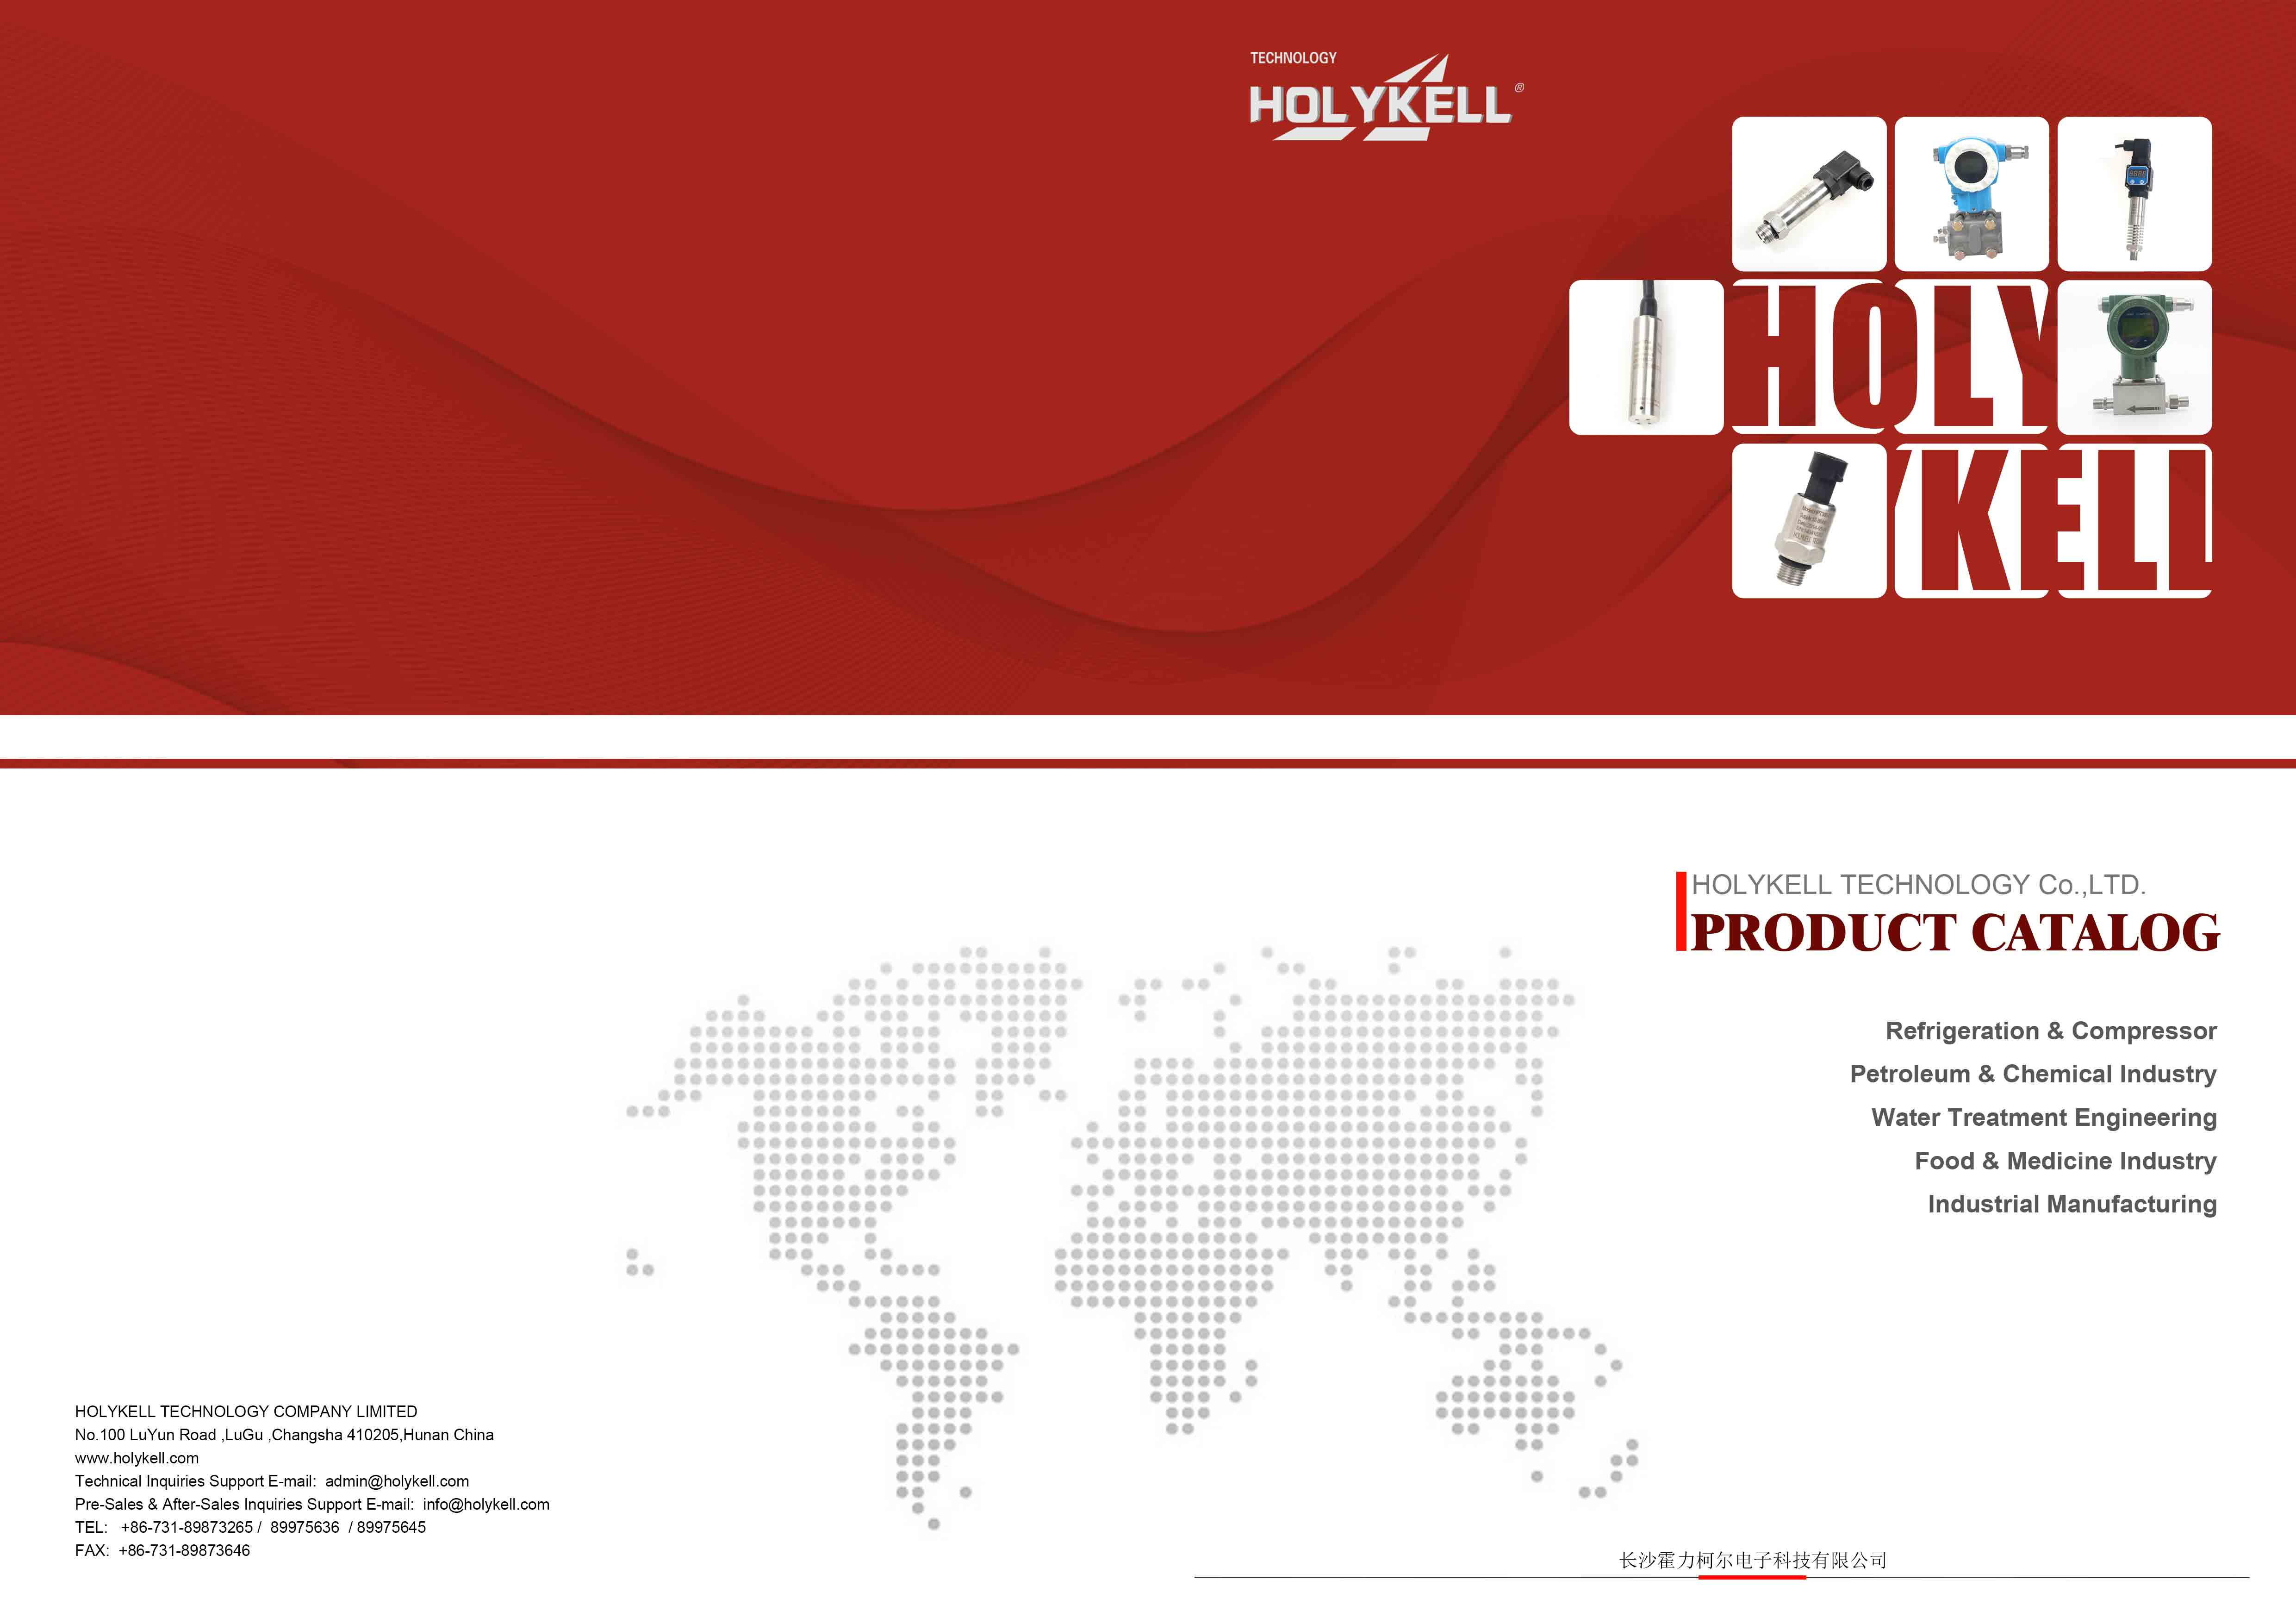 Product Catalogs - Holykell Technology Company Limited